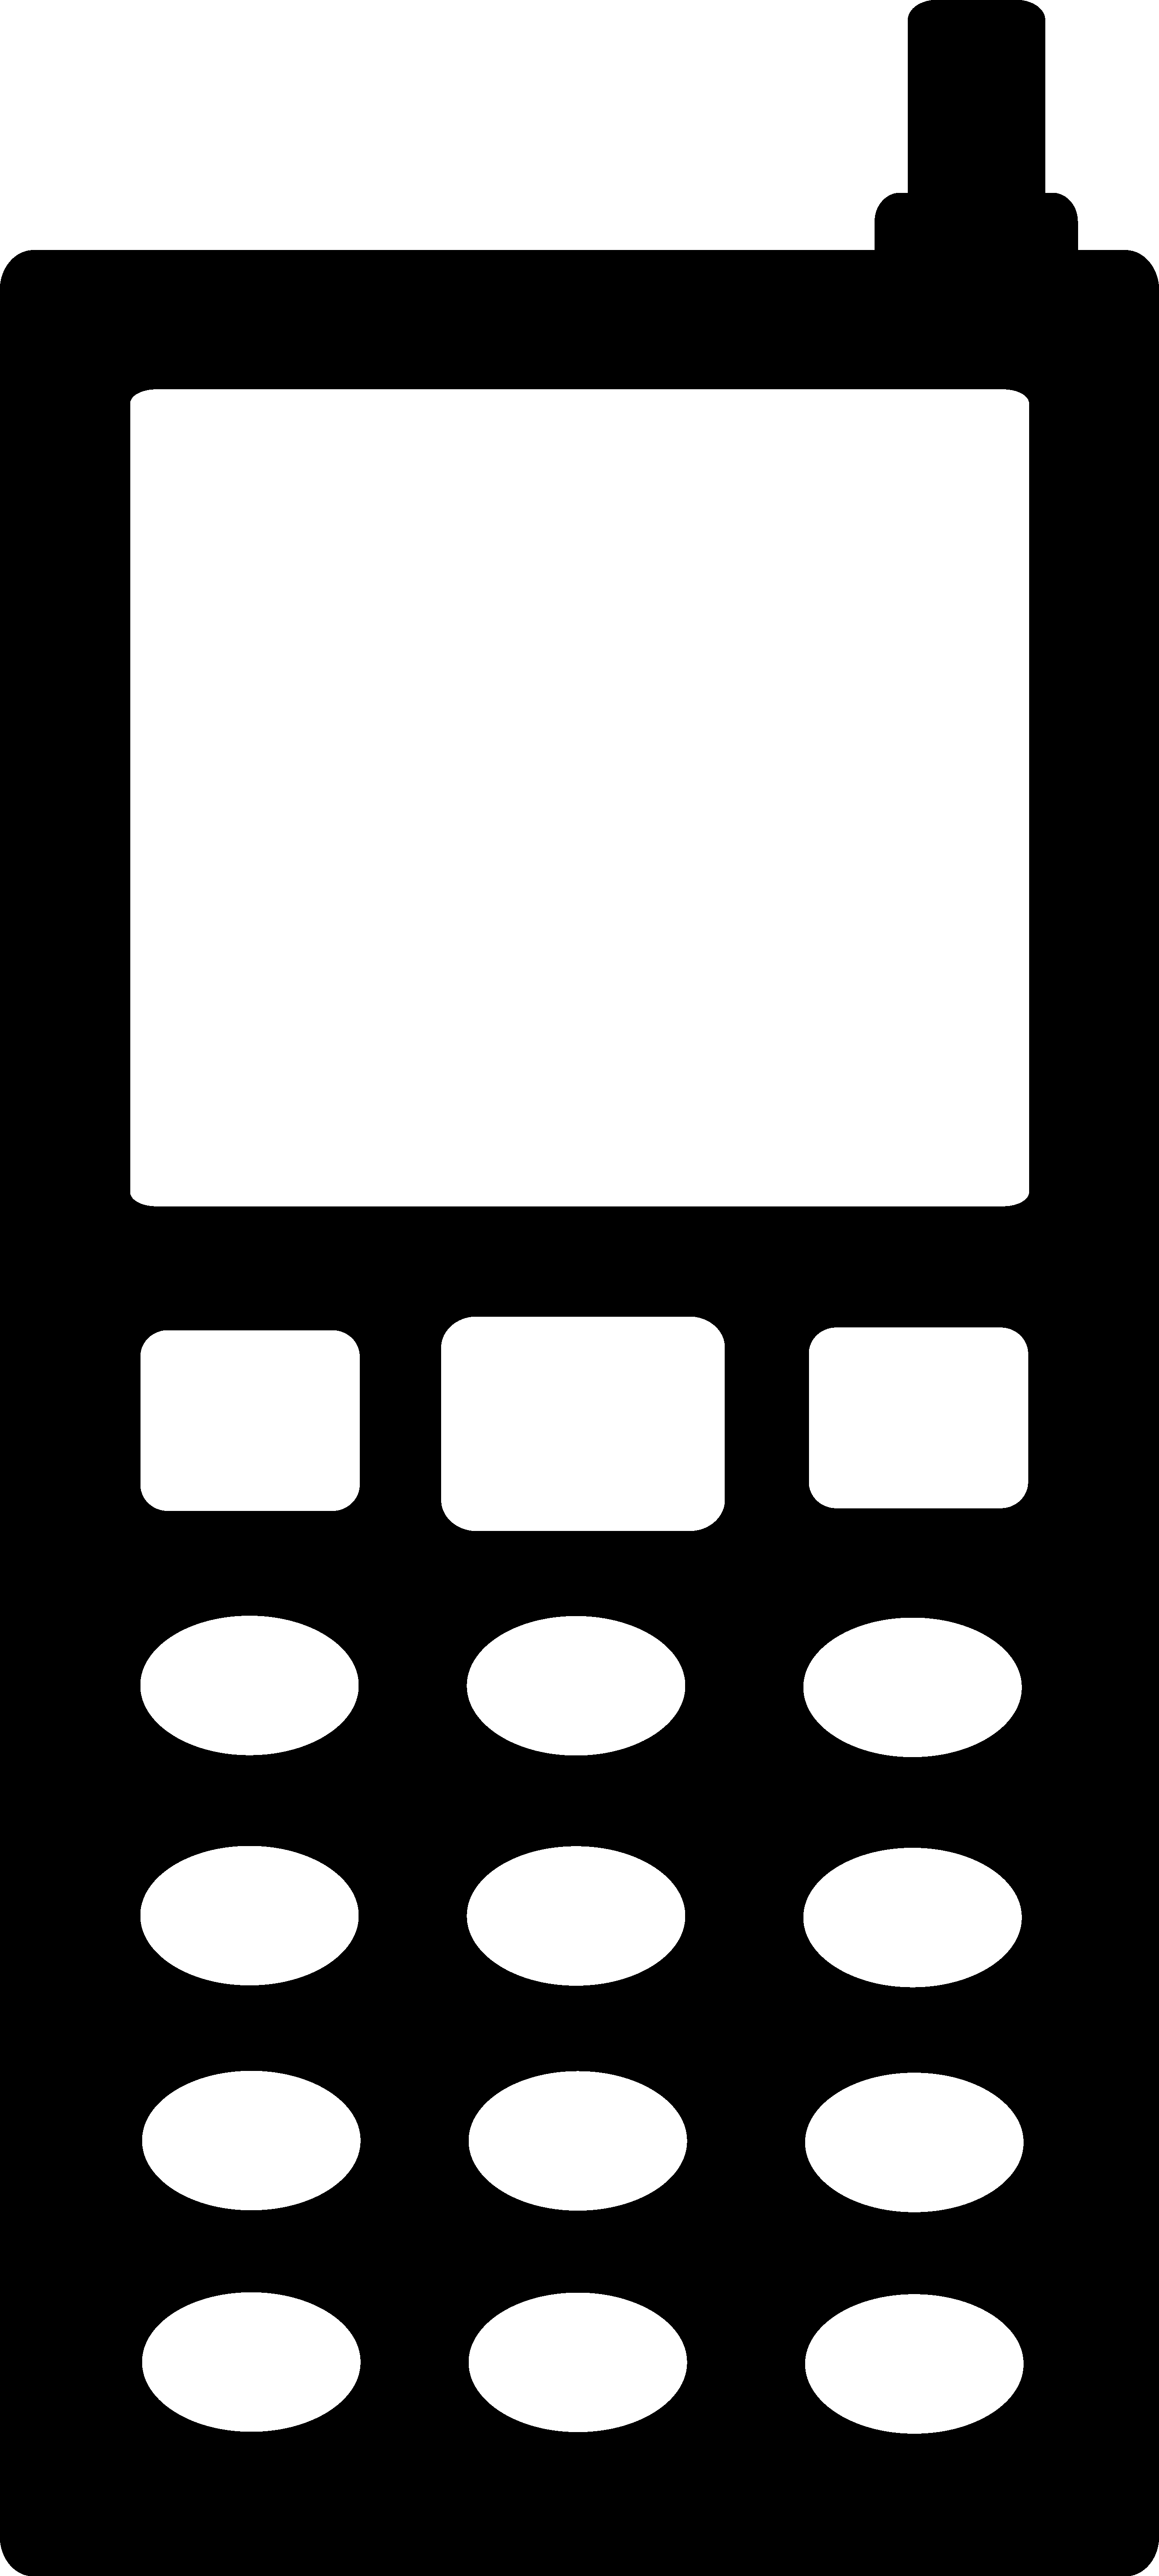 2722x6049 Black Cell Phone Silhouette